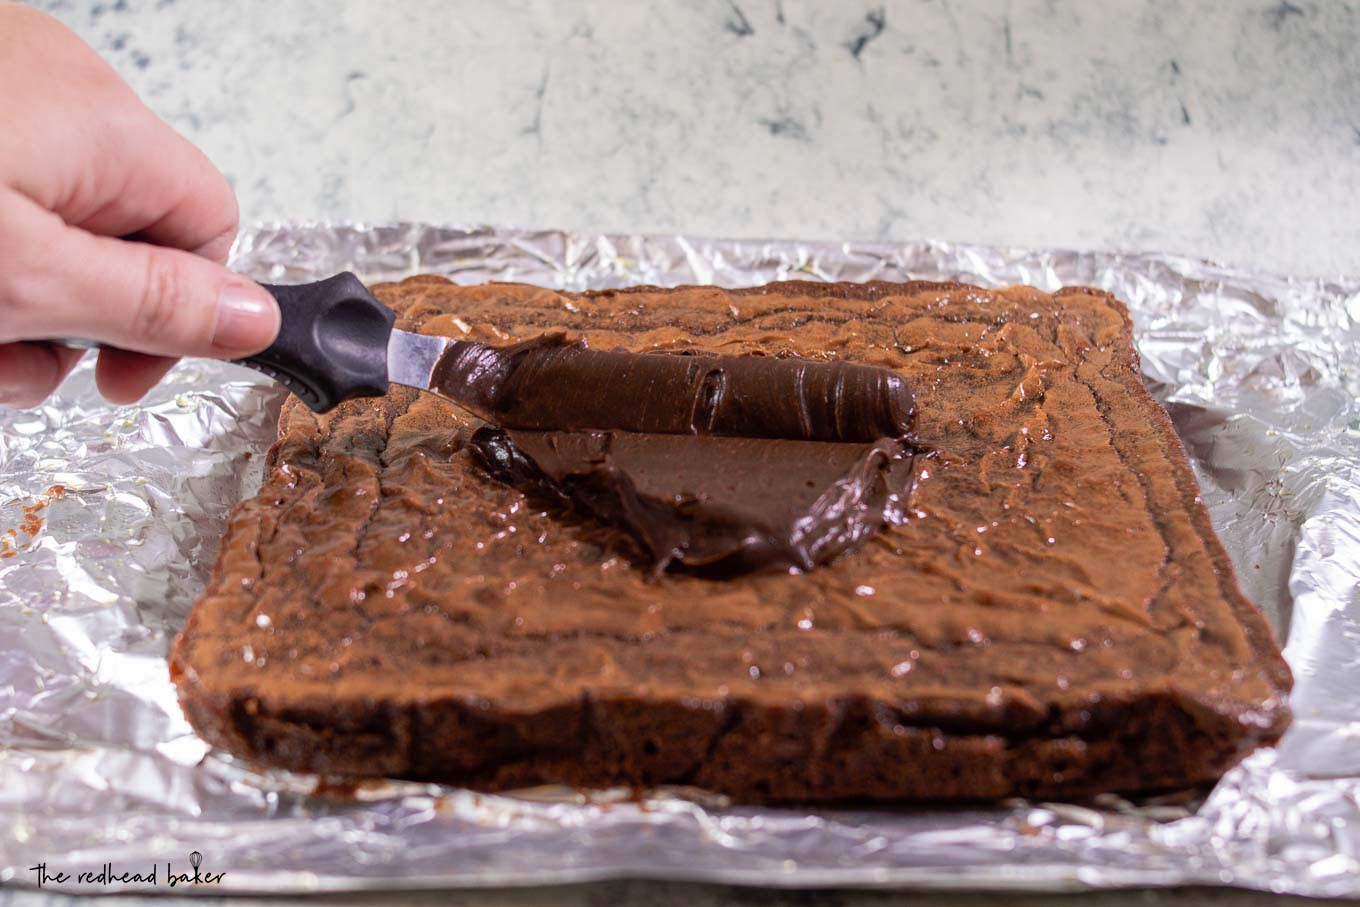 Chocolate icing being spread on a sheet of baked brownies